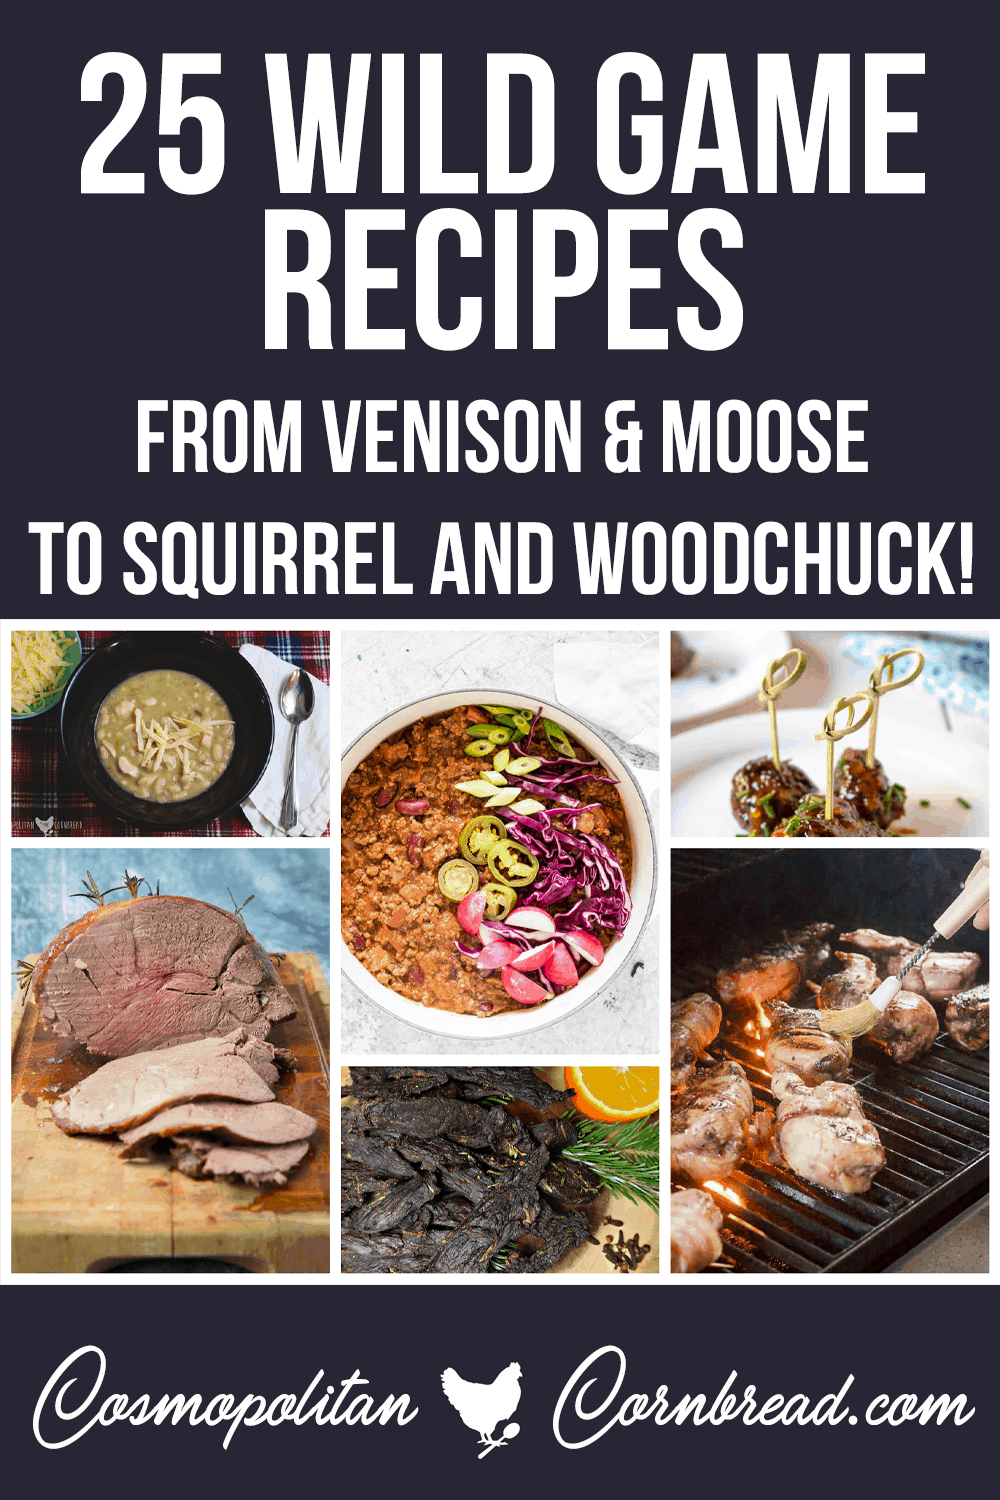 25 Wild Game Recipes for those with a sense of Adventure!